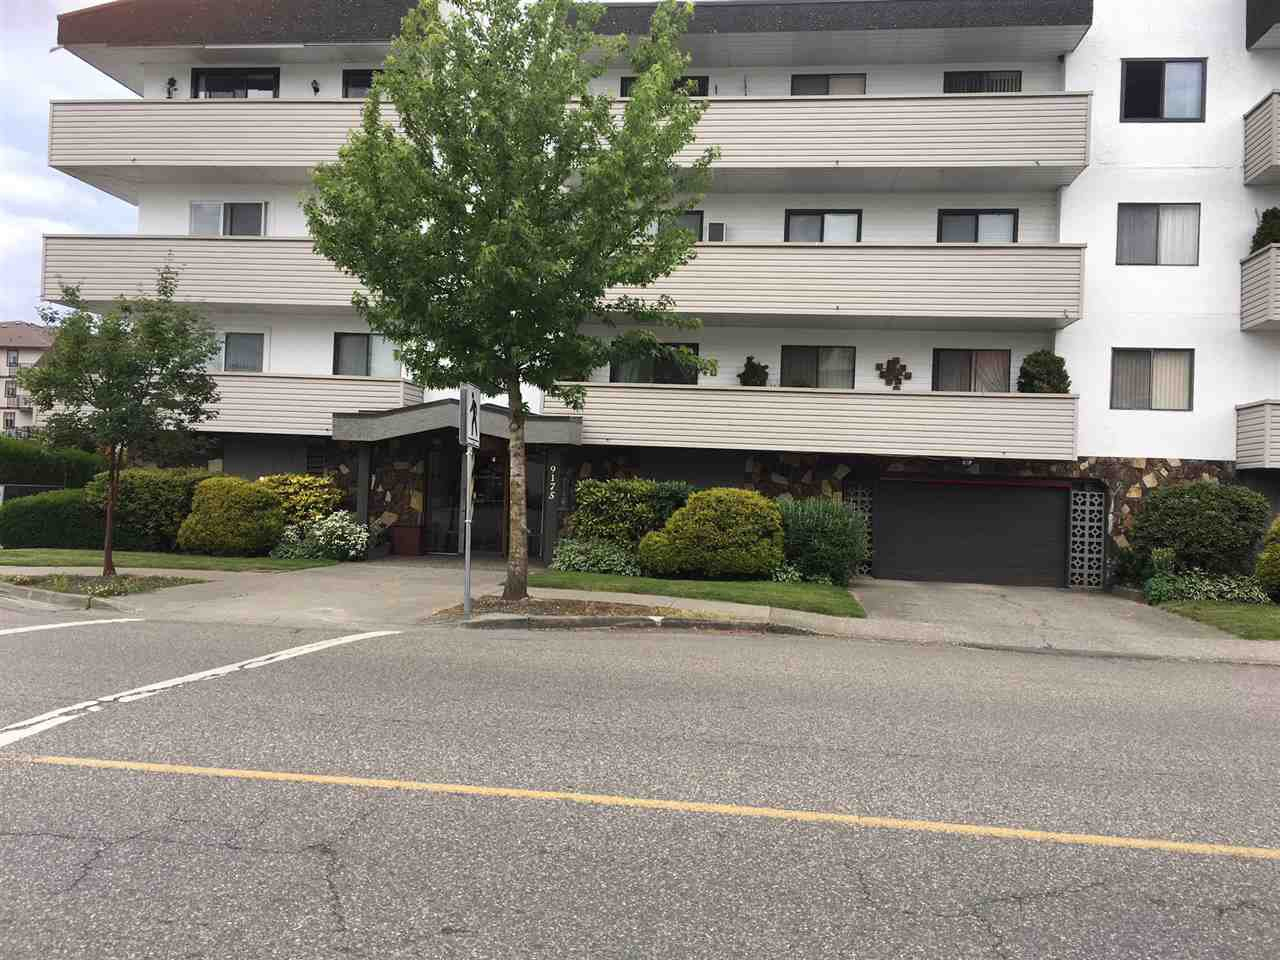 """Main Photo: 210 9175 MARY Street in Chilliwack: Chilliwack W Young-Well Condo for sale in """"RIDGEWOOD COURT"""" : MLS®# R2276203"""